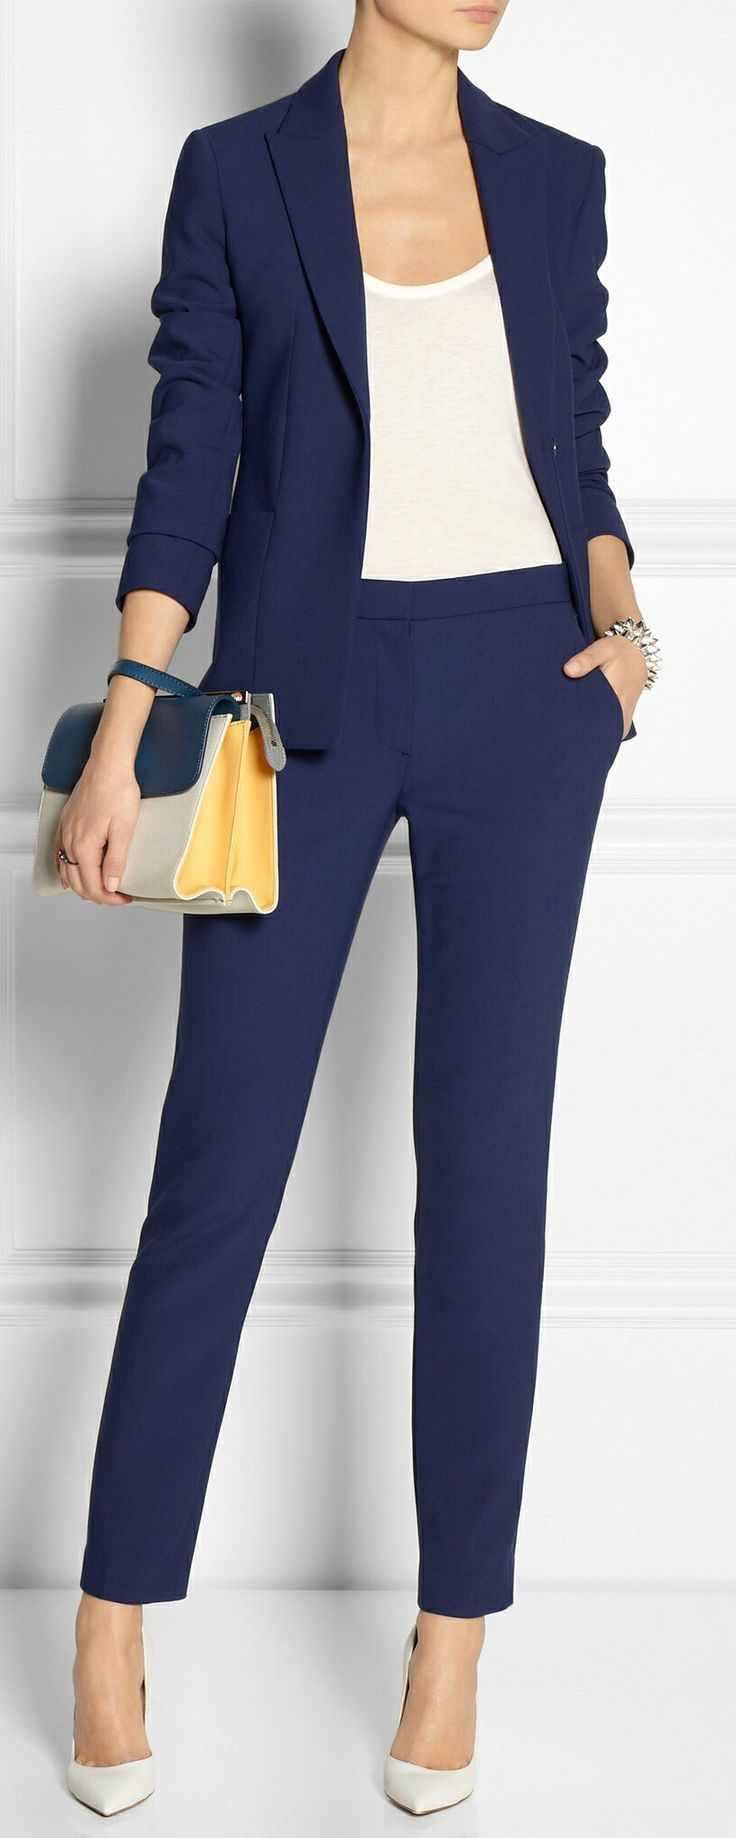 18 Work Outfits Every Working Woman Should Have | Blazers, Working ...